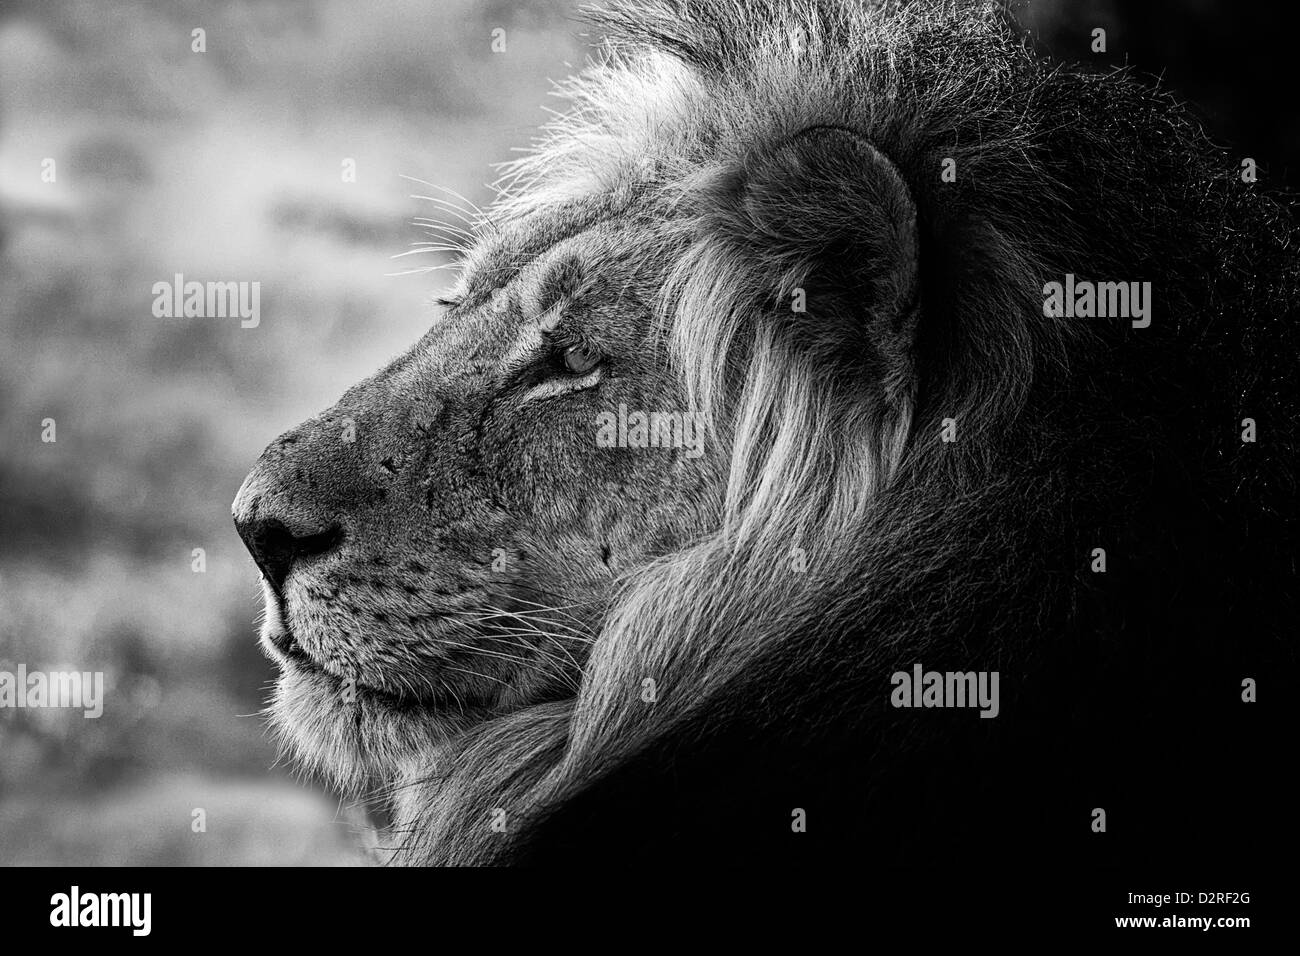 Portrait of a big male lion in black and white, Africa, Afrika, Kalahari desert. dominant, schwarz weiß, s/w - Stock Image